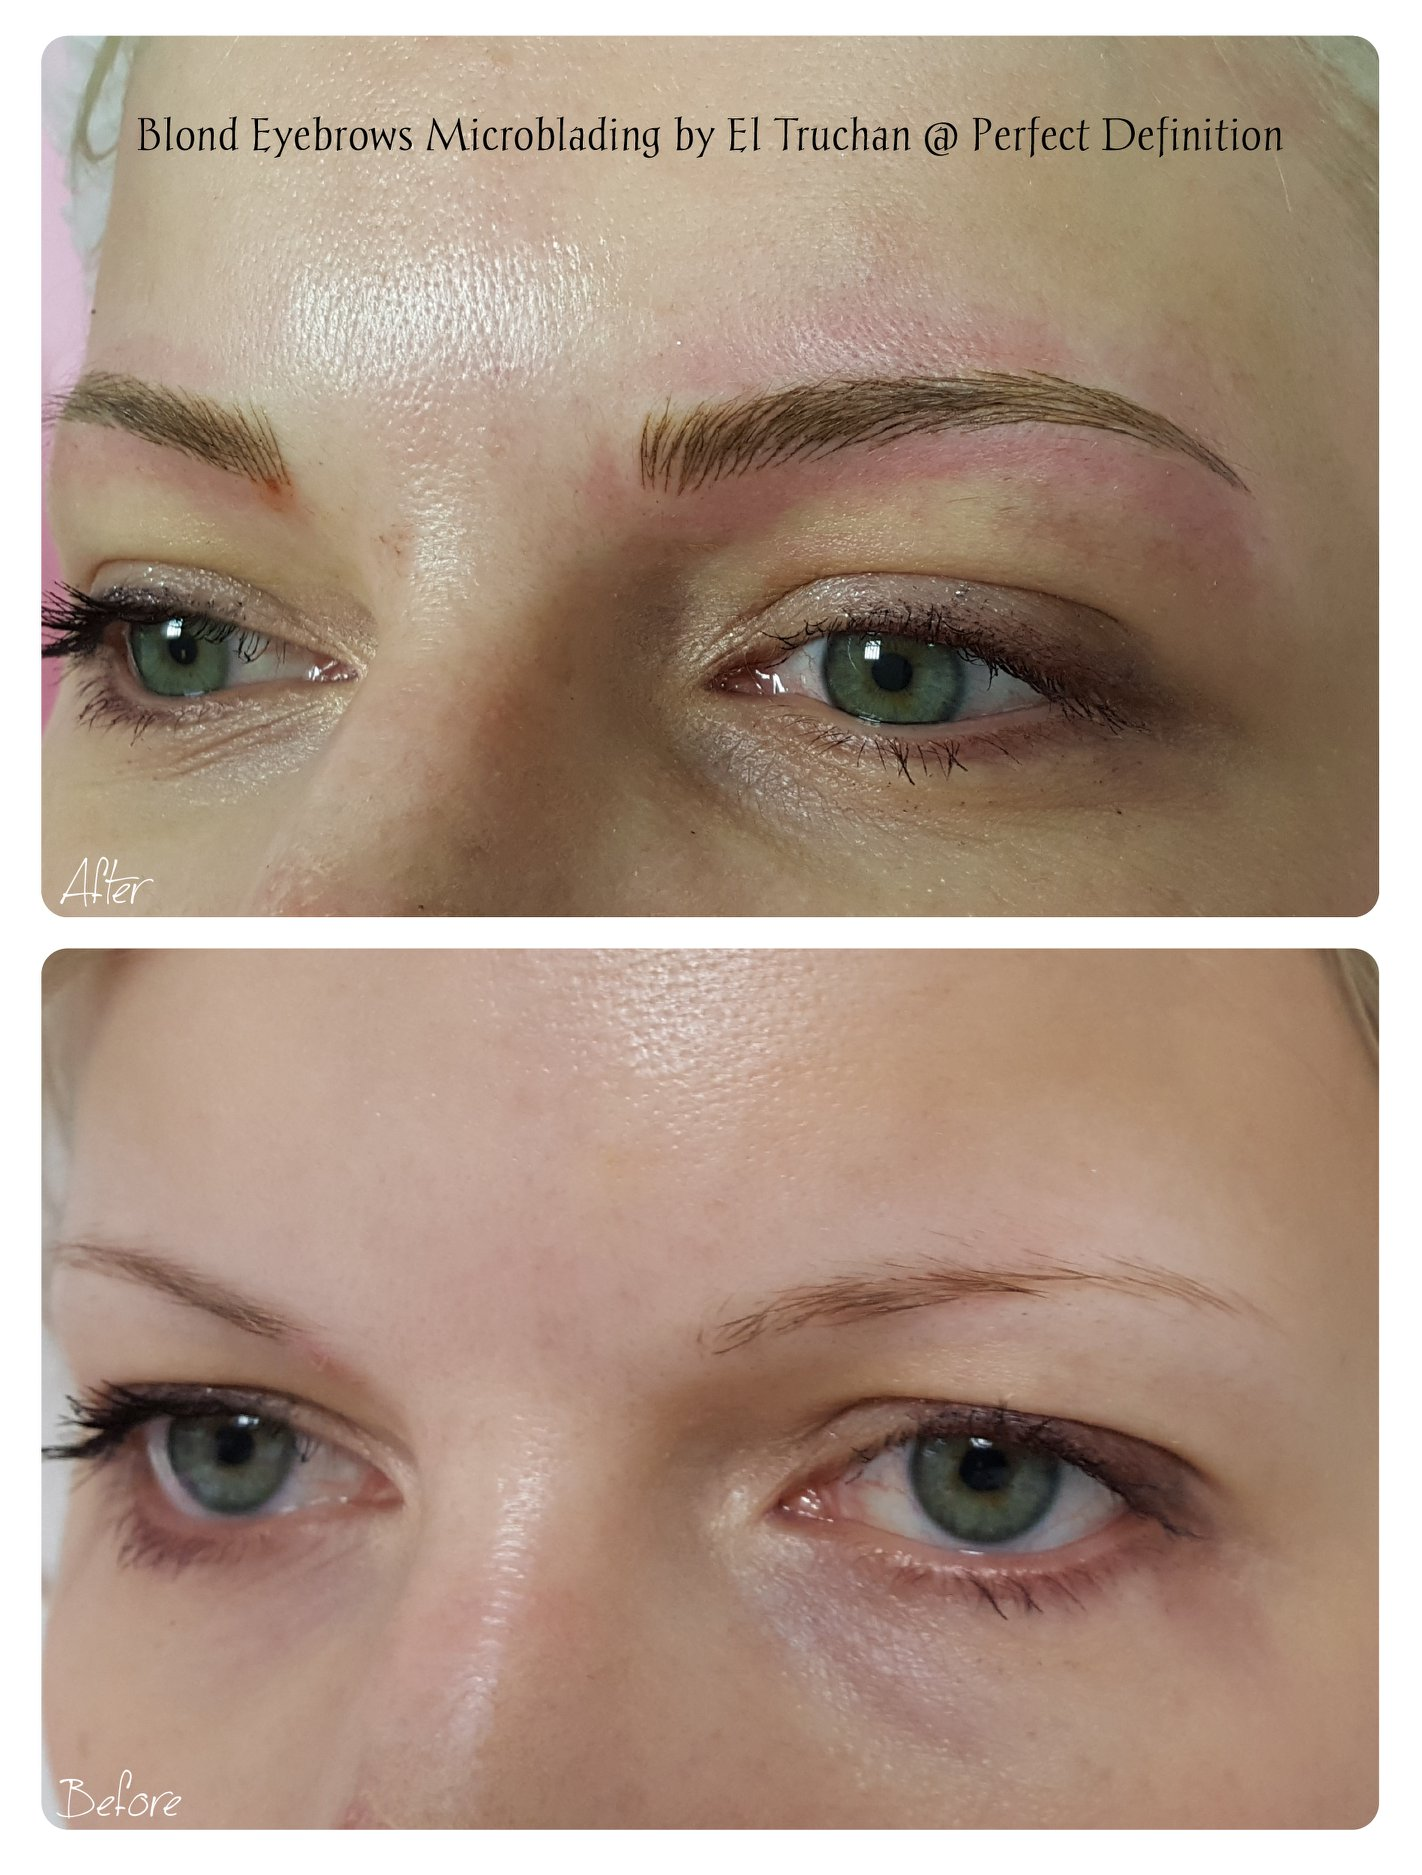 Blonde Eyrbows Microblading by El Trucha